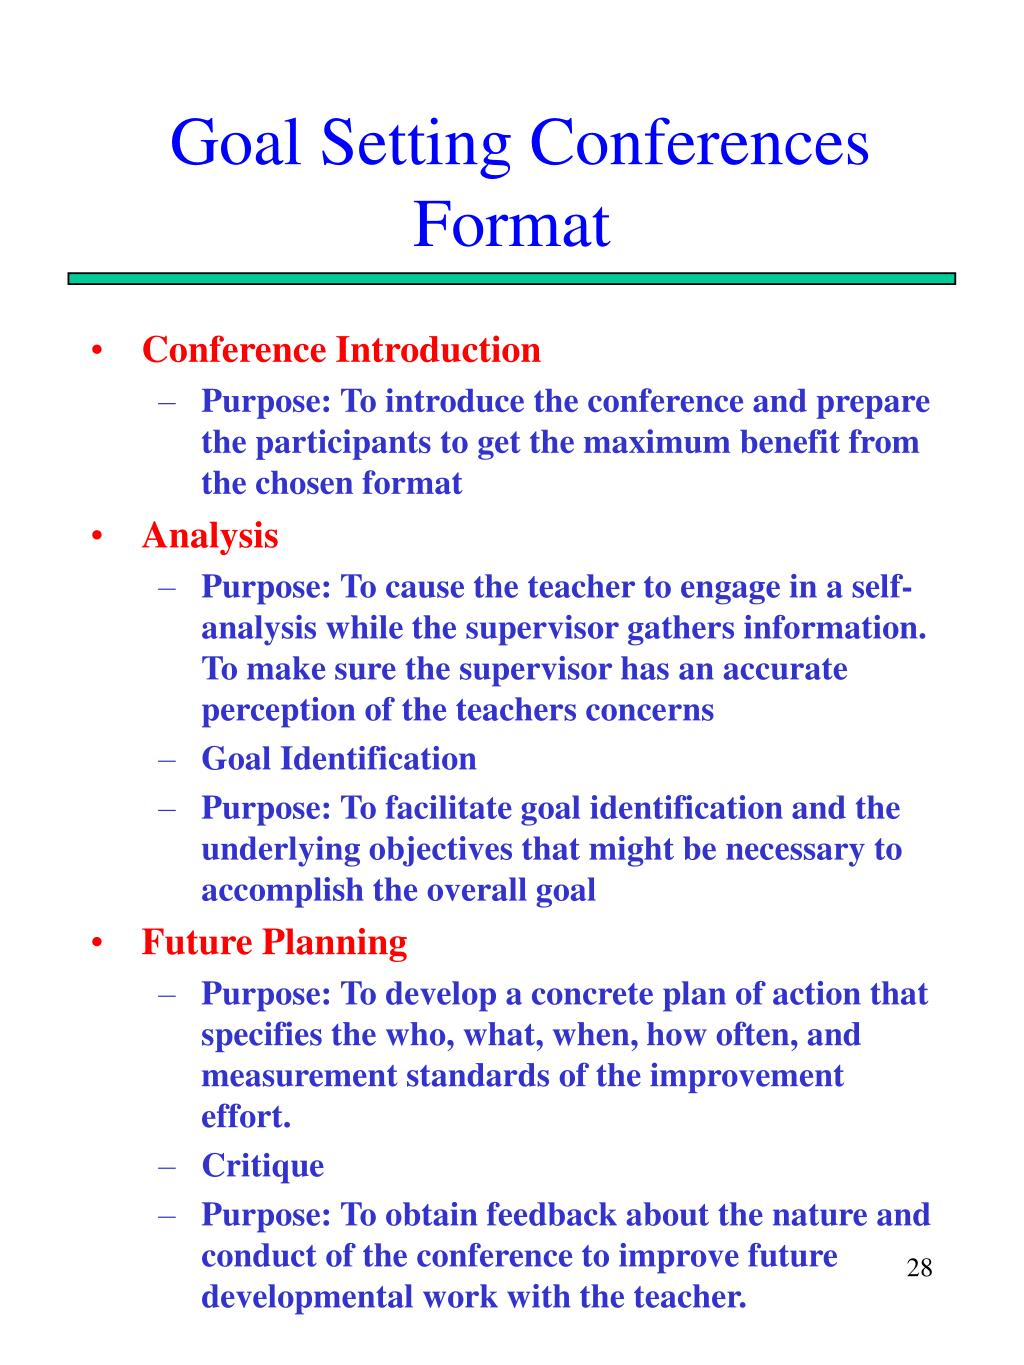 Goal Setting Conferences Format